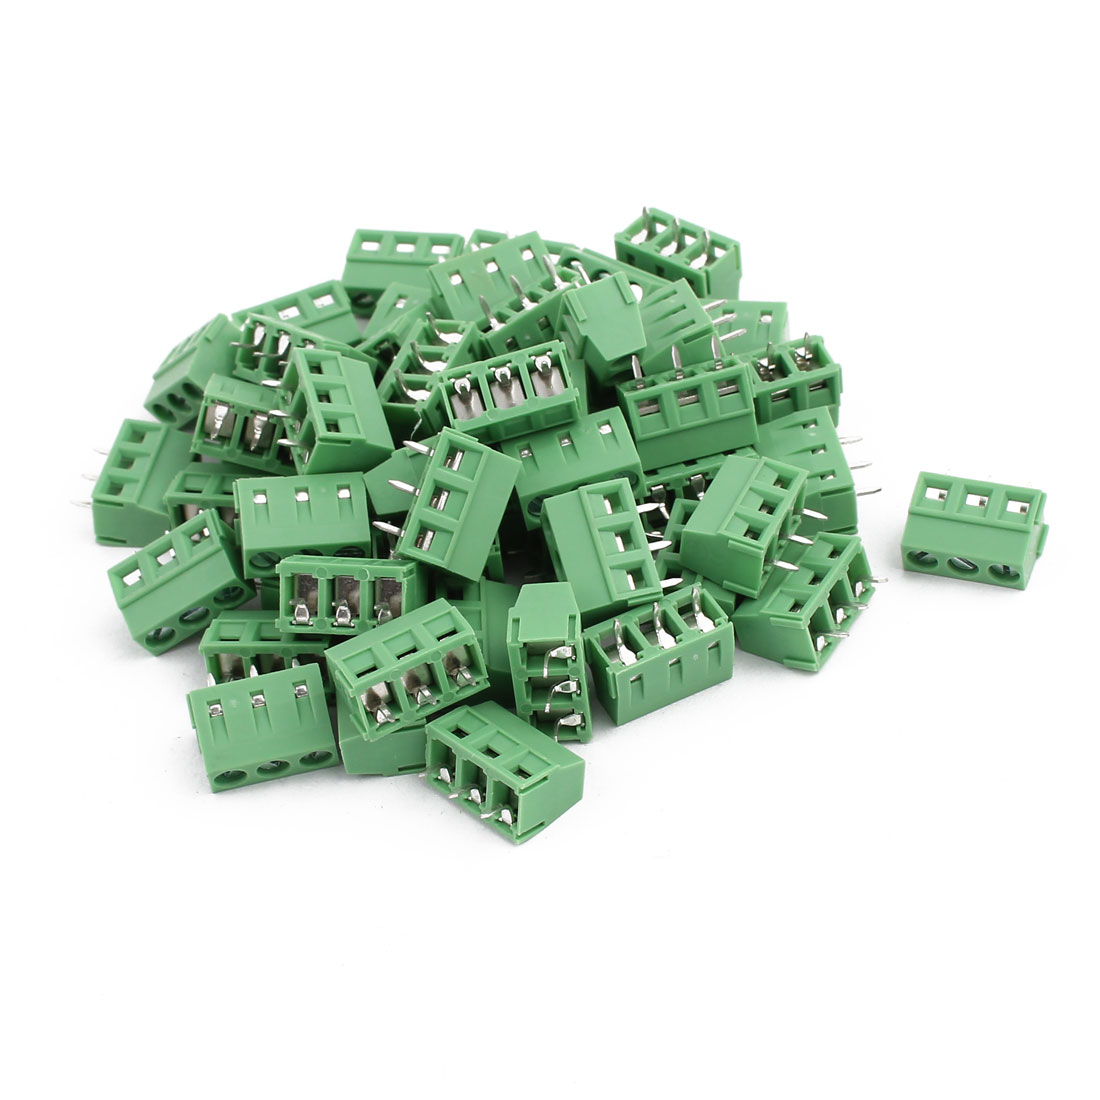 50Pcs KF127 AC300V 10A 3P 5mm Pitch Screw Type PCB Terminal Blocks Connector